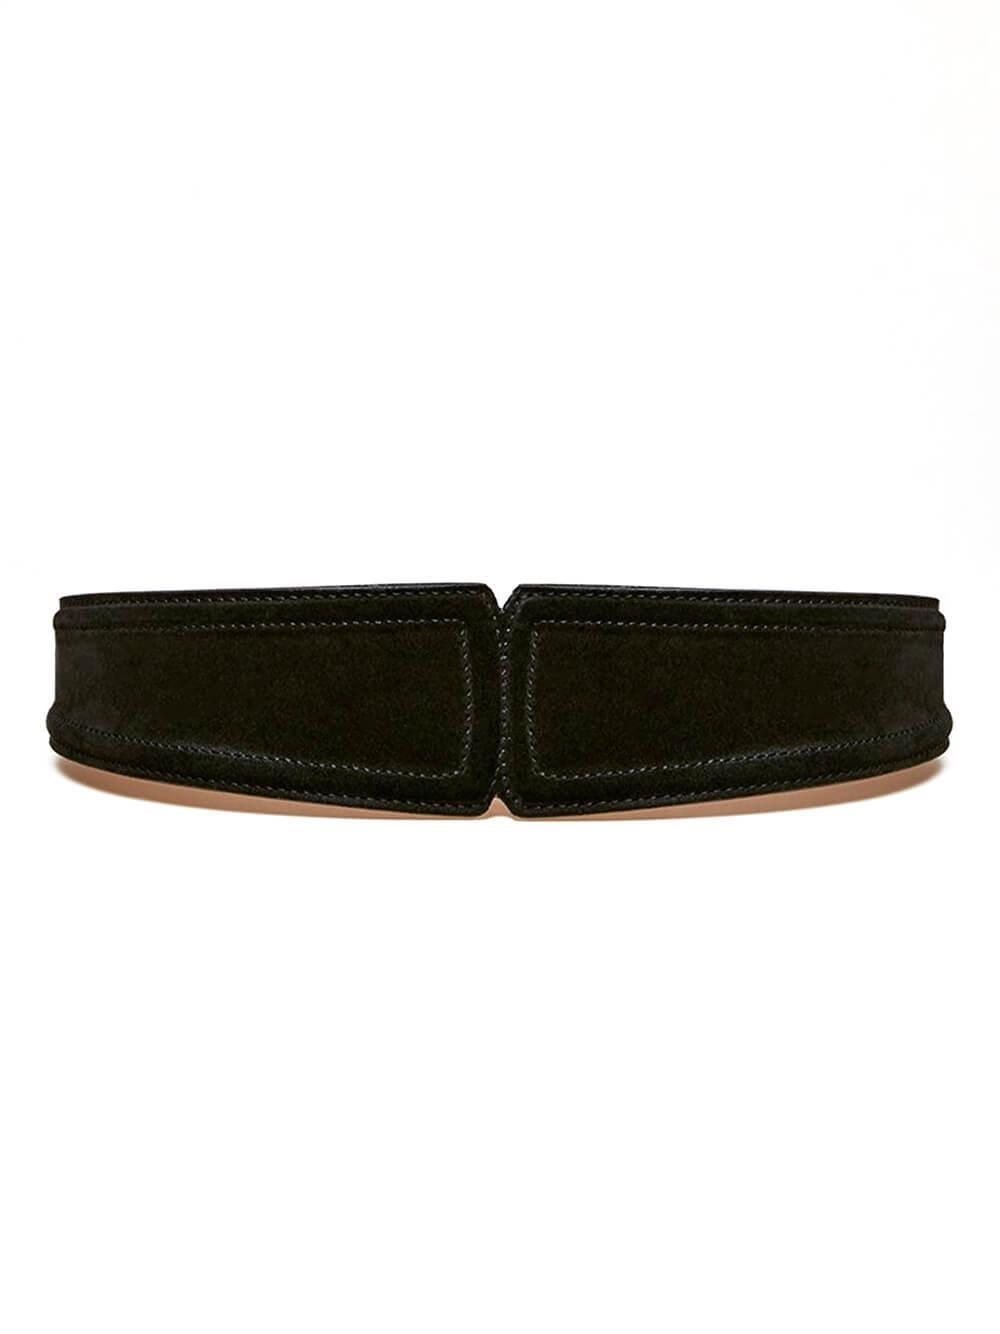 Kierra Belt Item # B200807FS